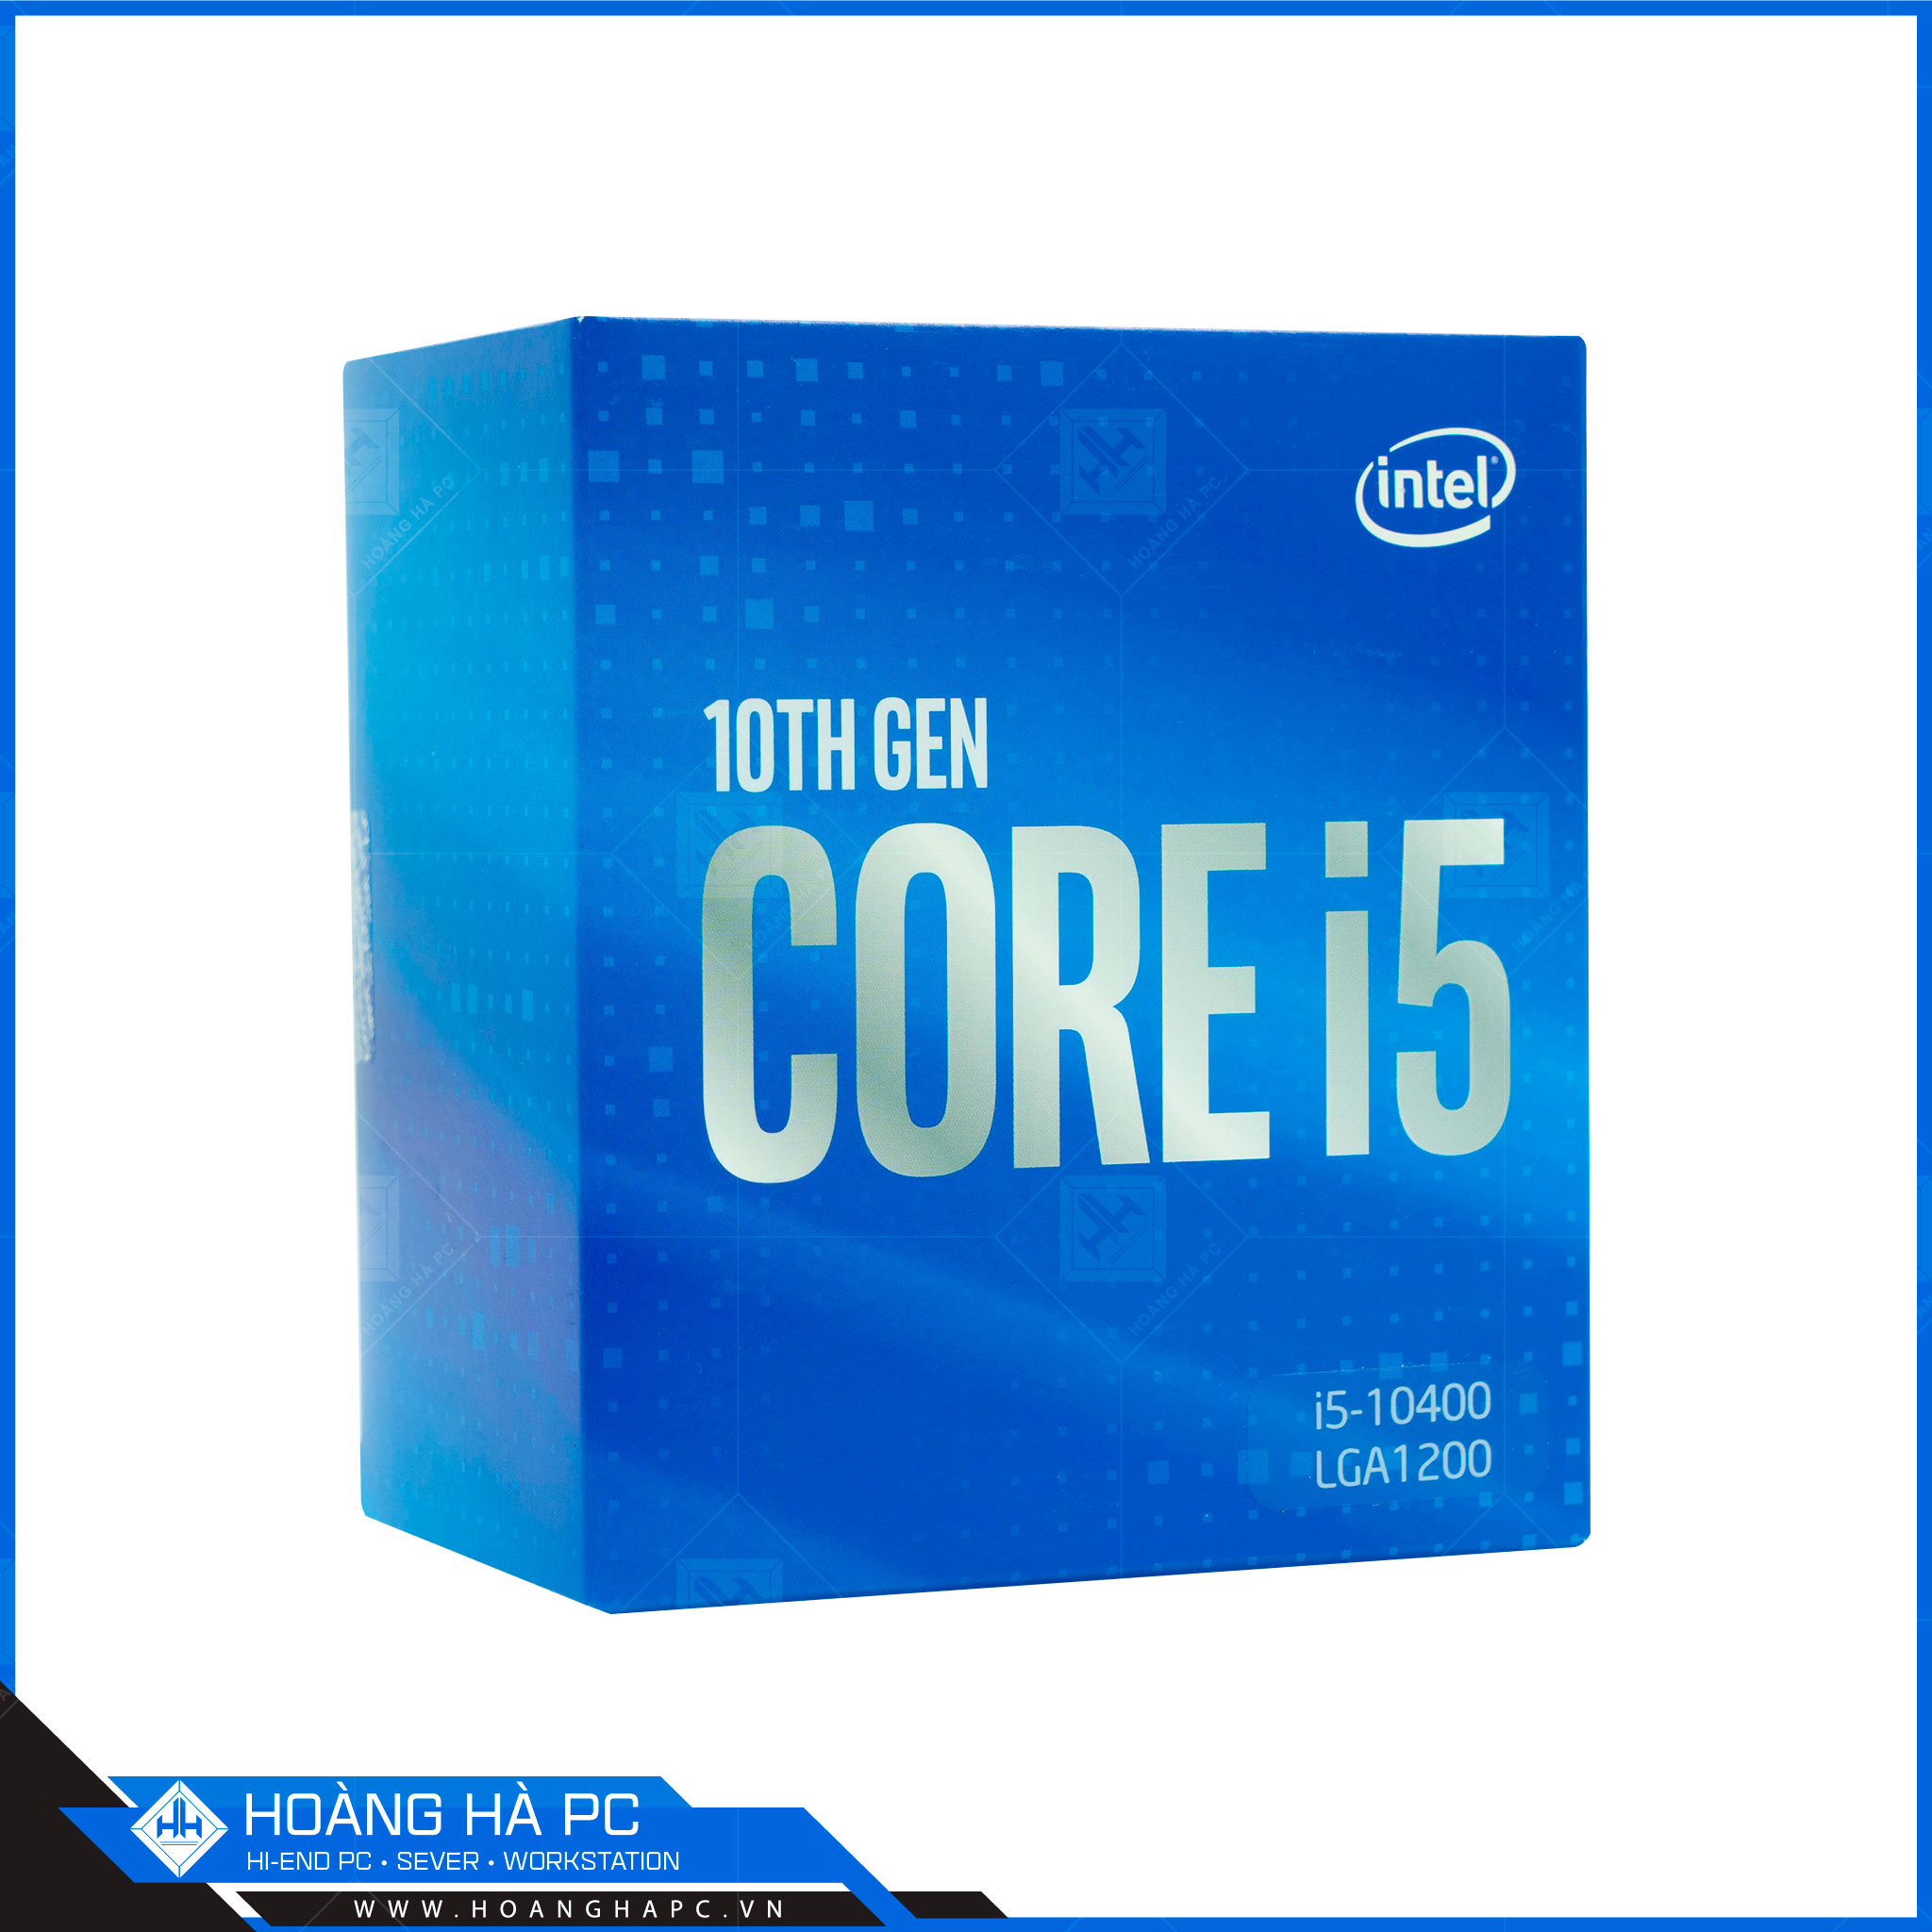 CPU Intel Core i5-10400 (2.90GHz Turbo Up To 4.30GHz, 6 Nhân 12 Luồng, 12MB Cache, LGA 1200)